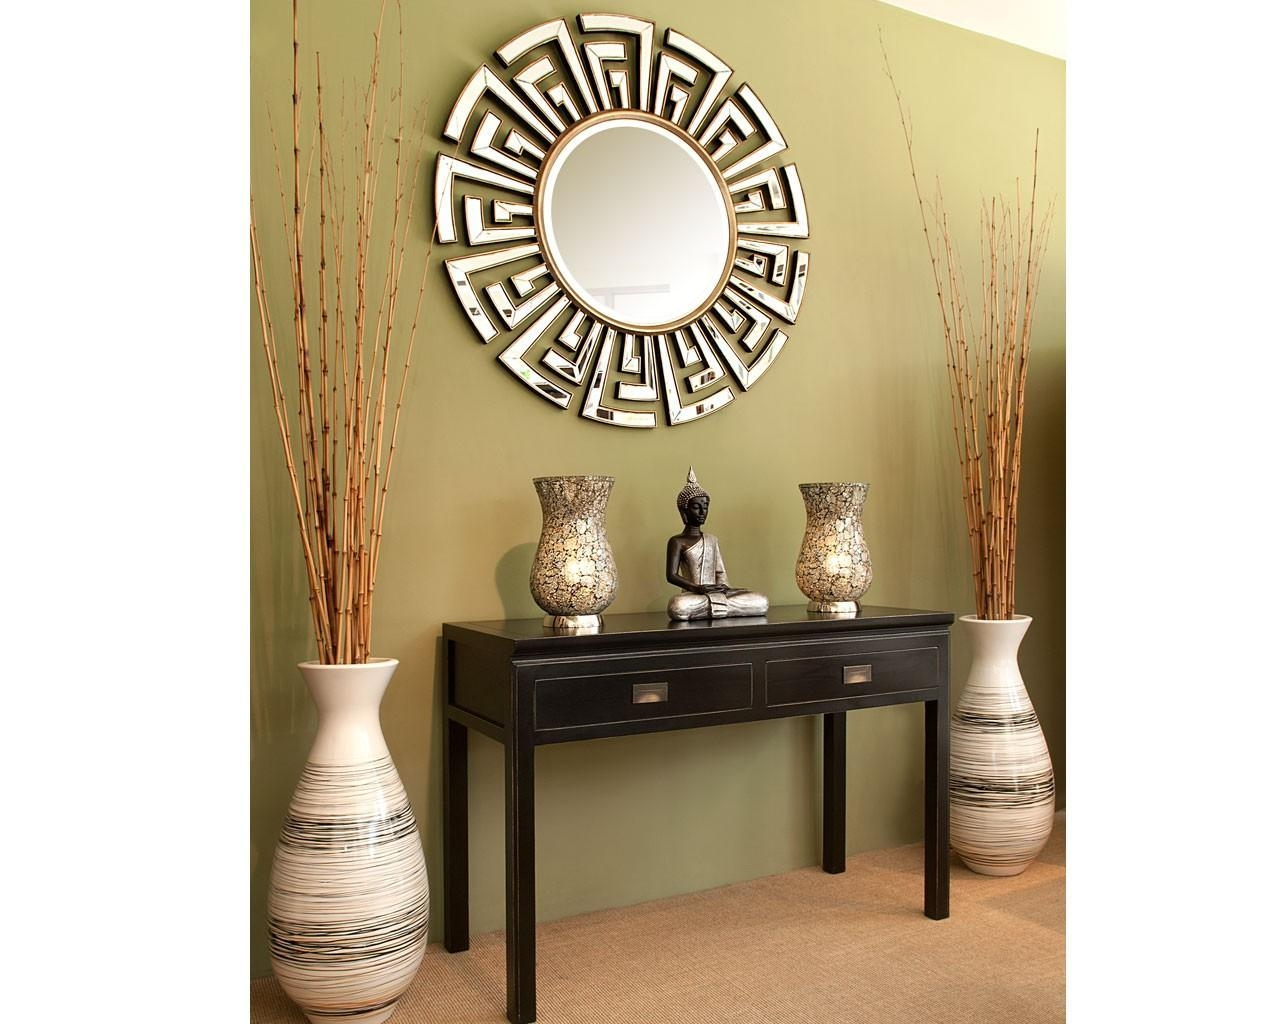 20 Inspirations Artdeco Mirrors Mirror Ideas